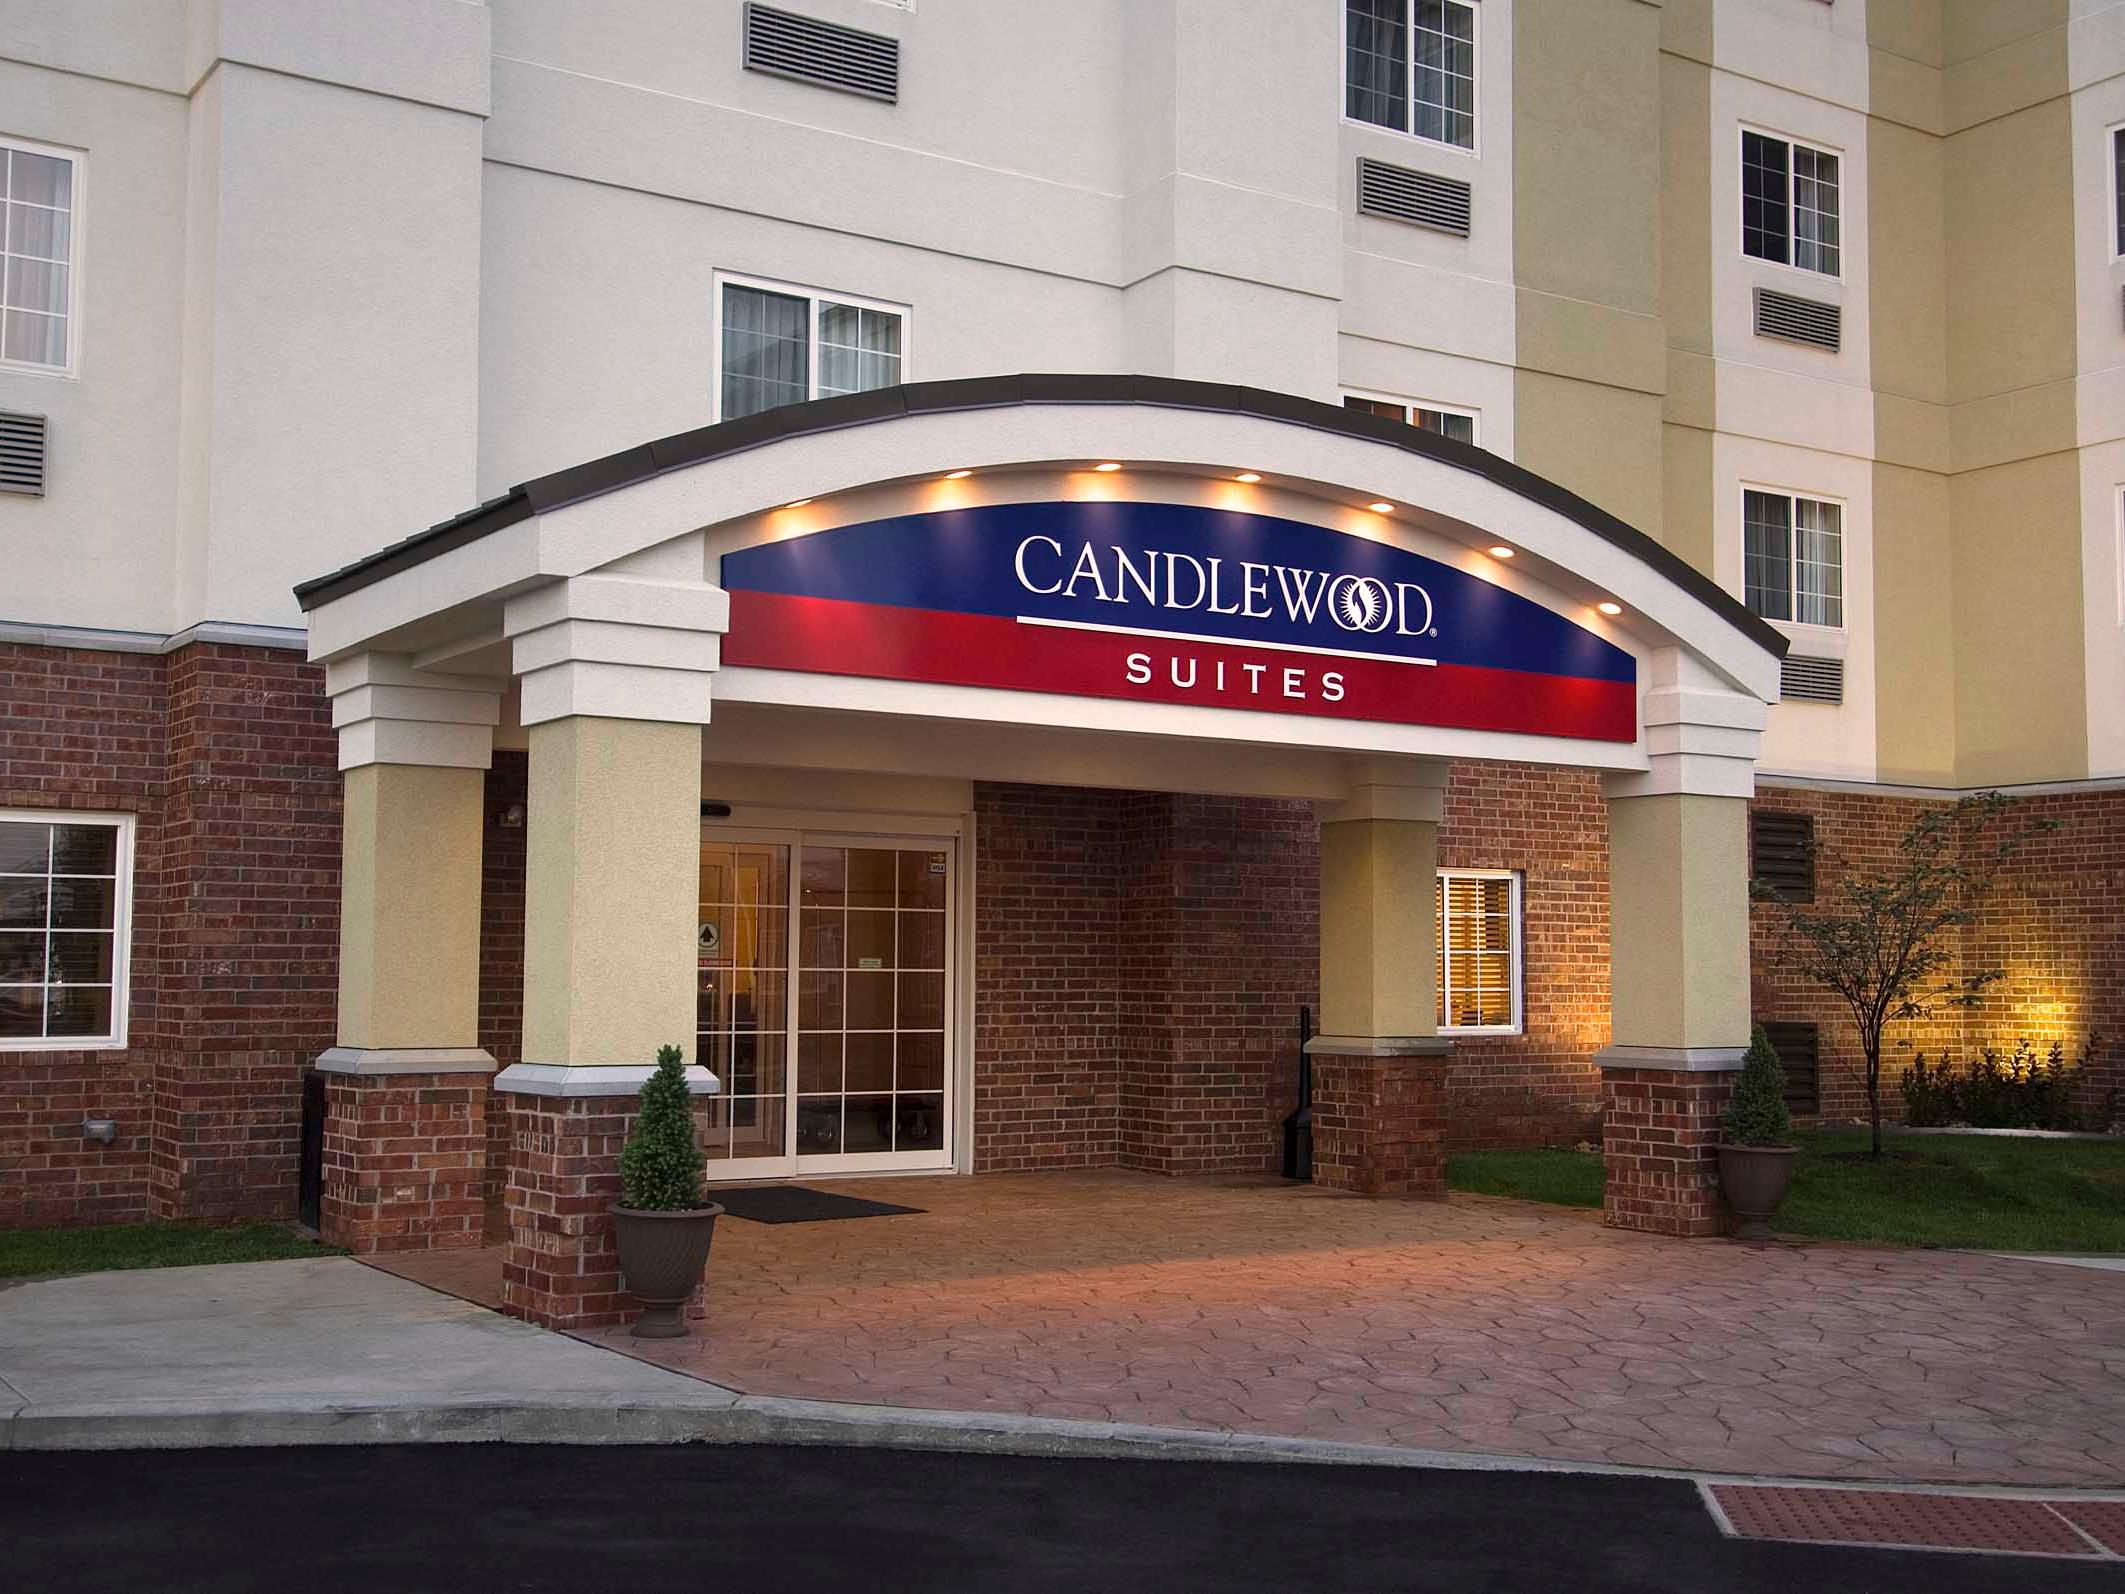 Lafayette Hotels Candlewood Suites Extended Stay Hotel In Indiana